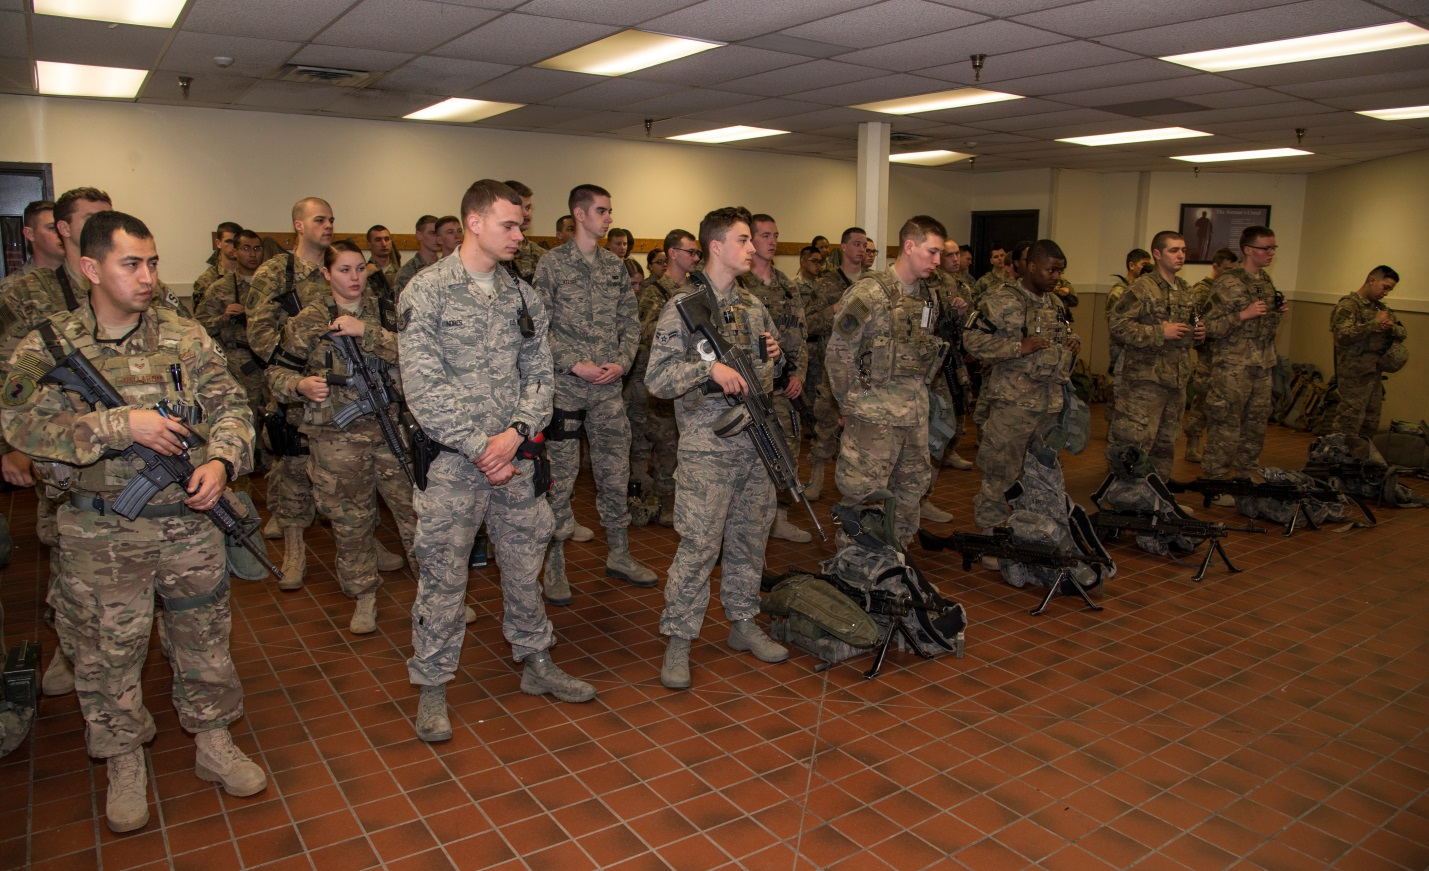 buddhist single men in minot afb All active-duty military are required to attend the newcomers' orientation,  single families,  edwards air force base military family housing is privatized.